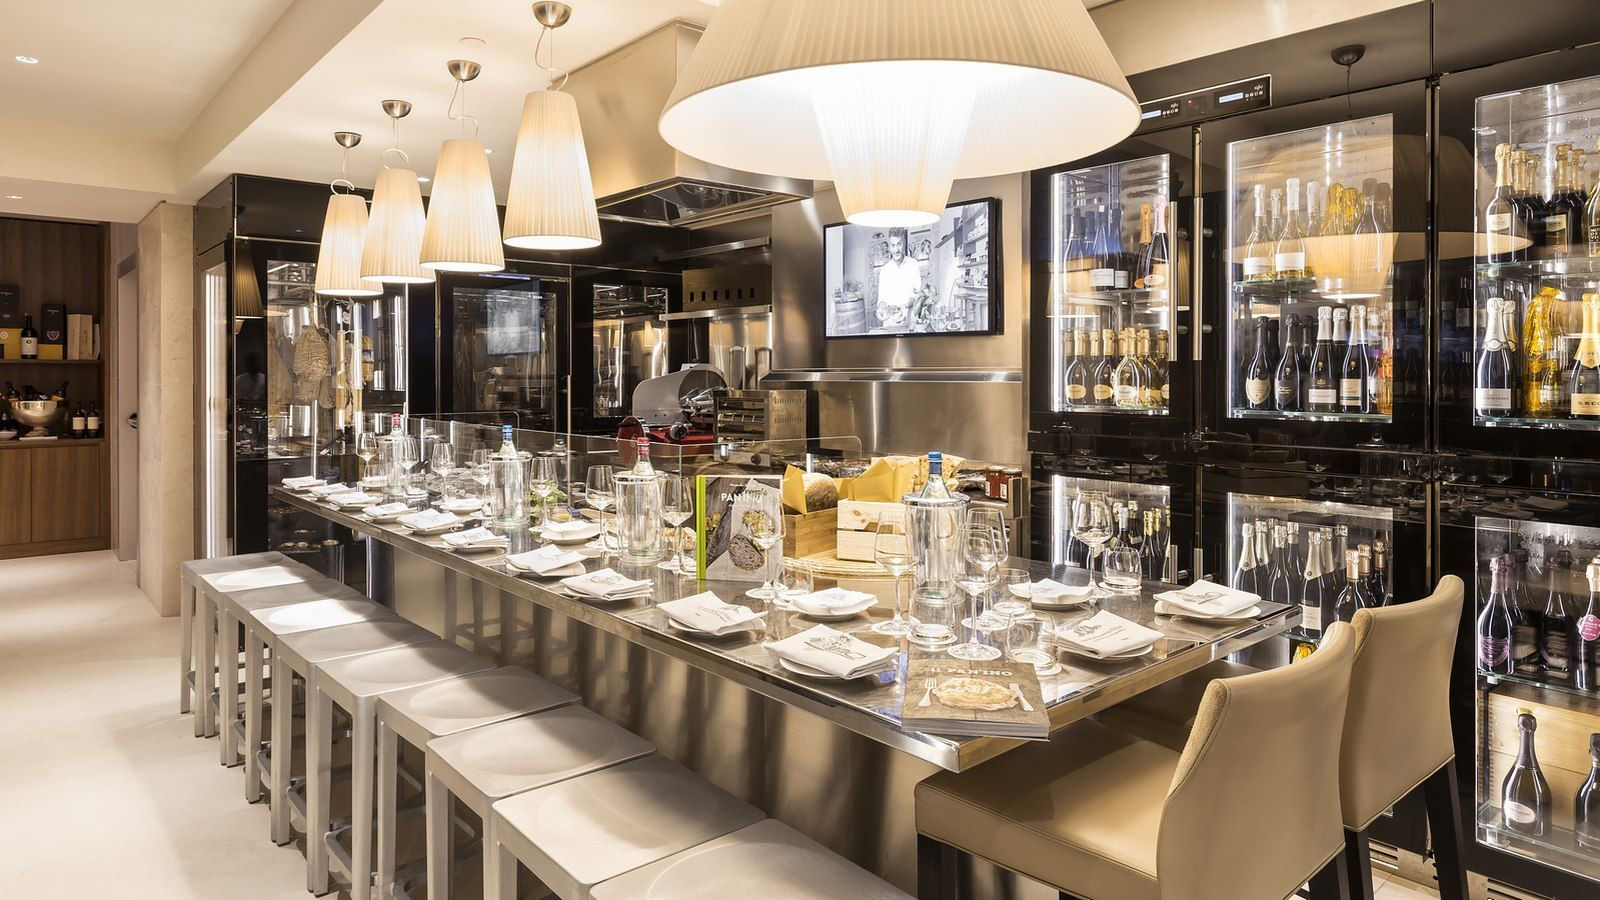 Wine Cellar, Excelsior Hotel Gallia, a Luxury Collection Hotel, Milan